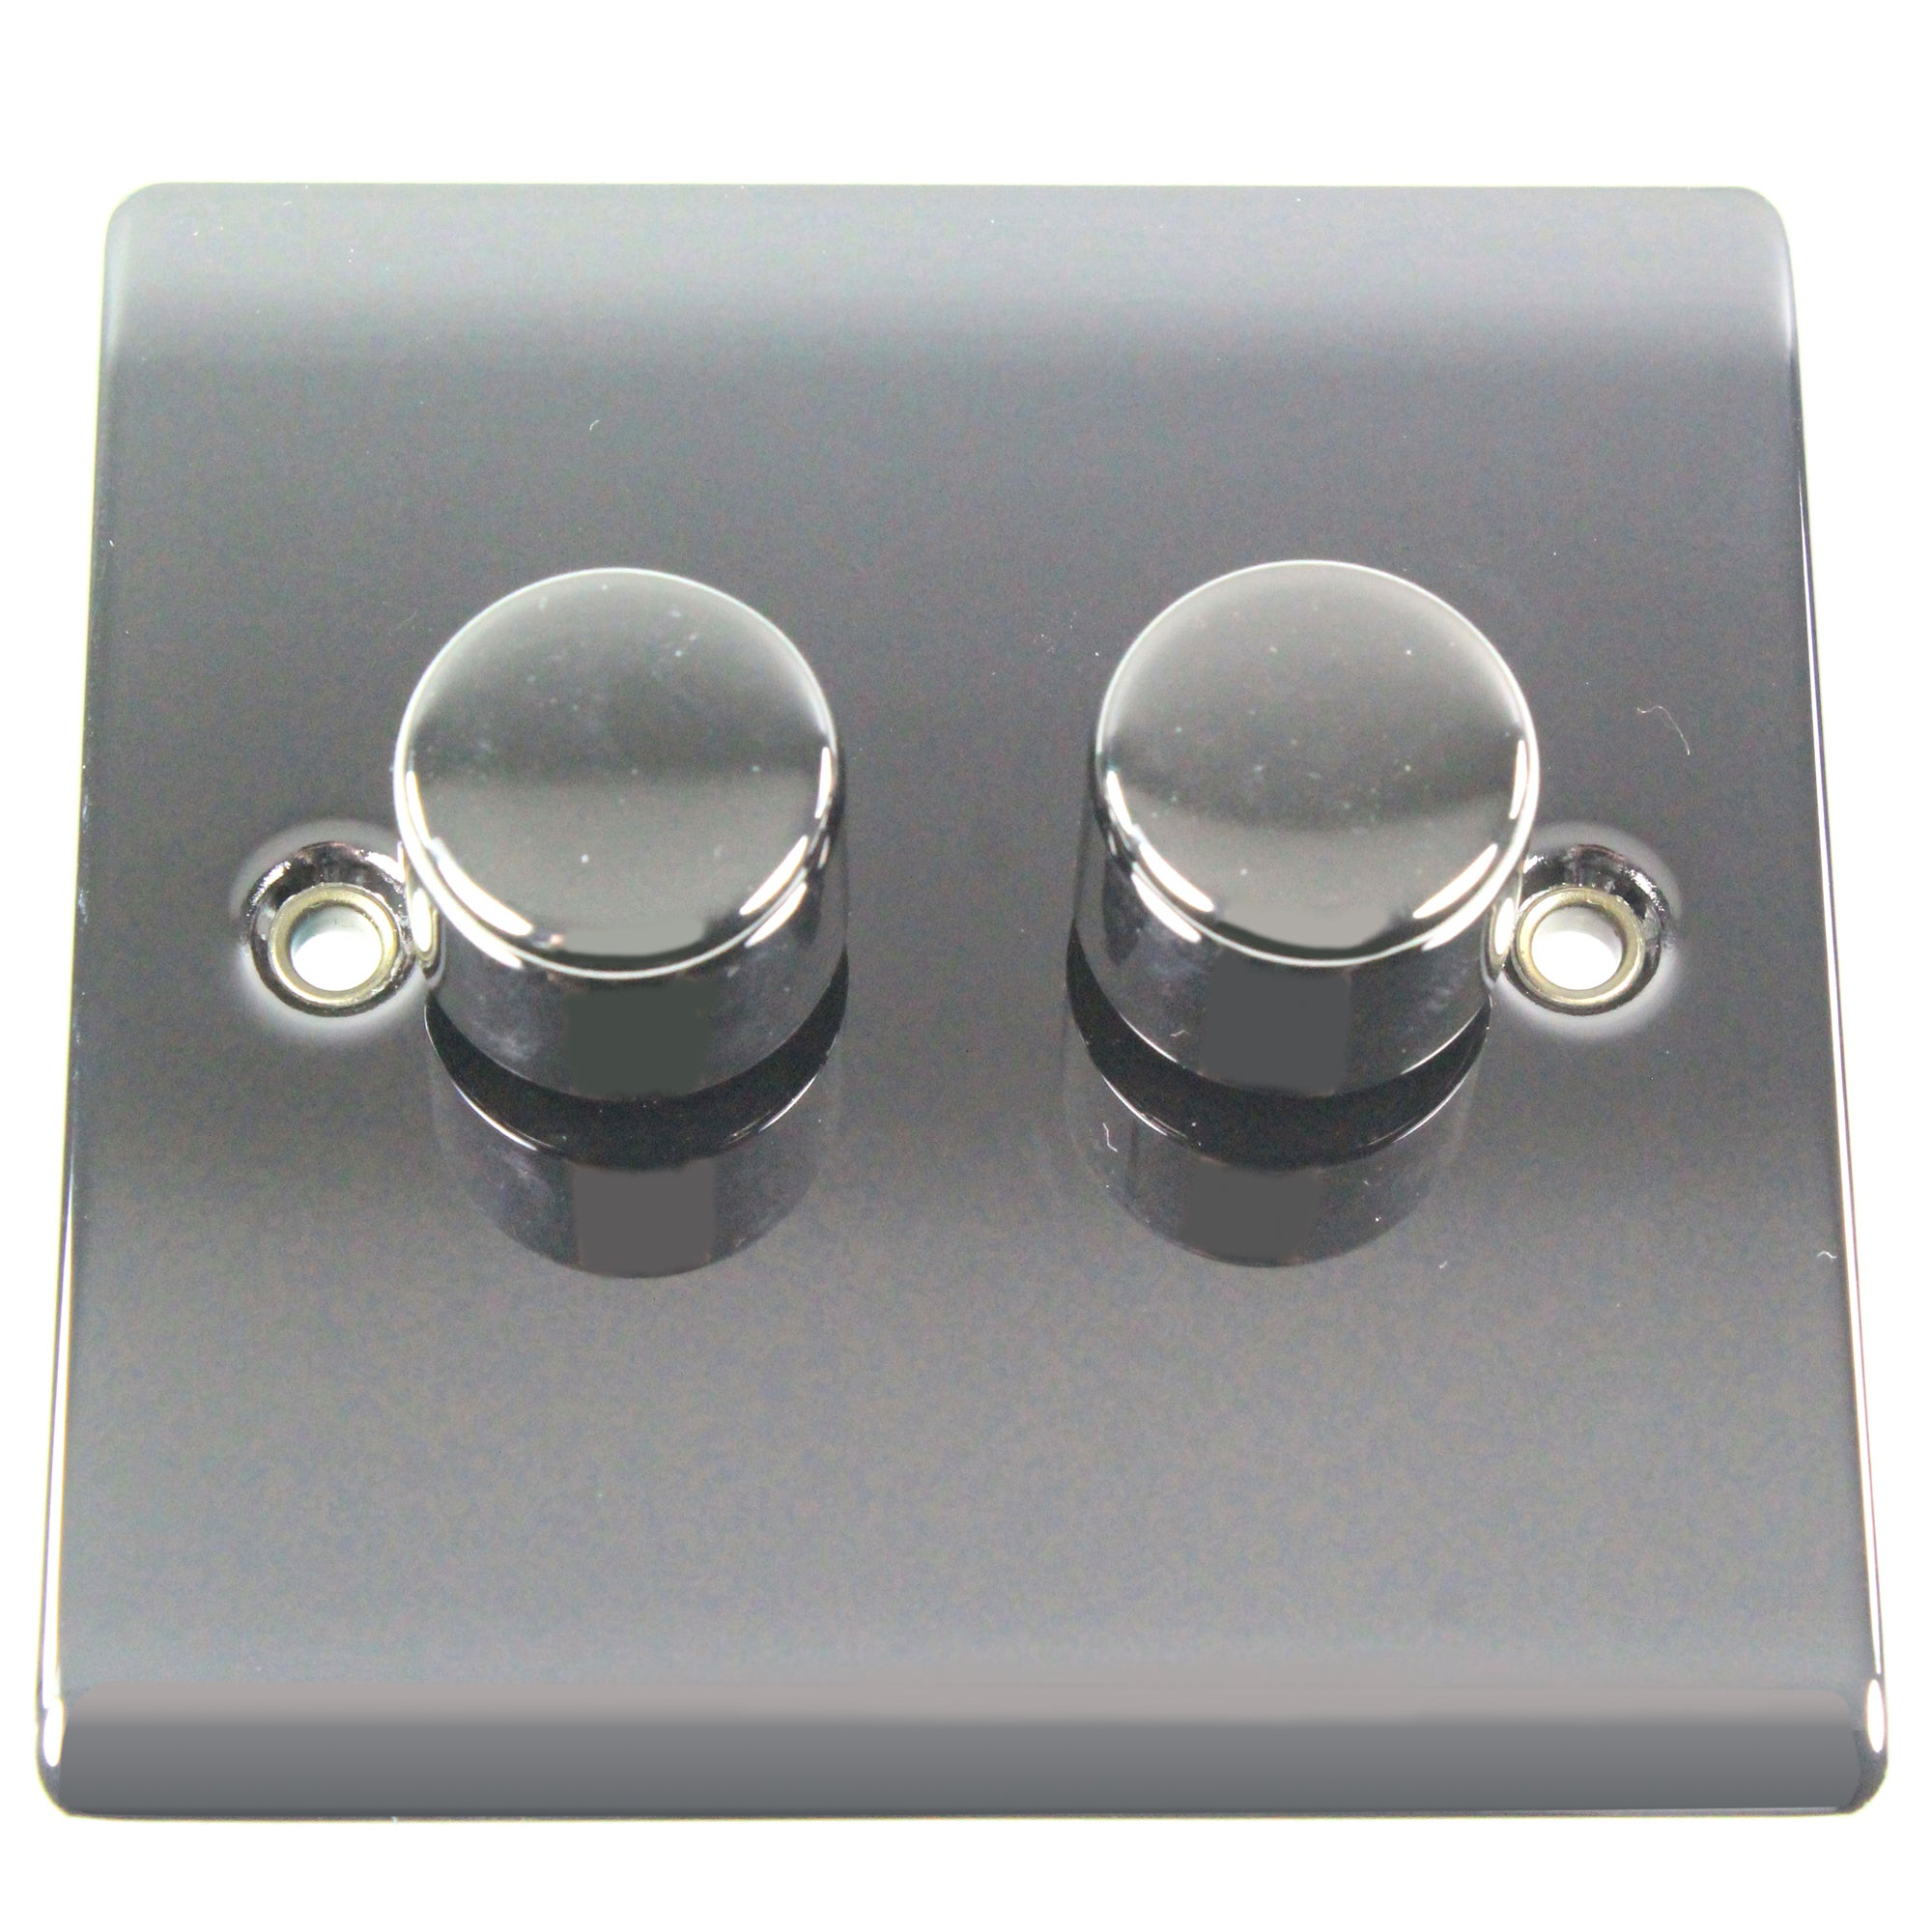 2 Gang 2 Way Black Nickel Dimmer Switch